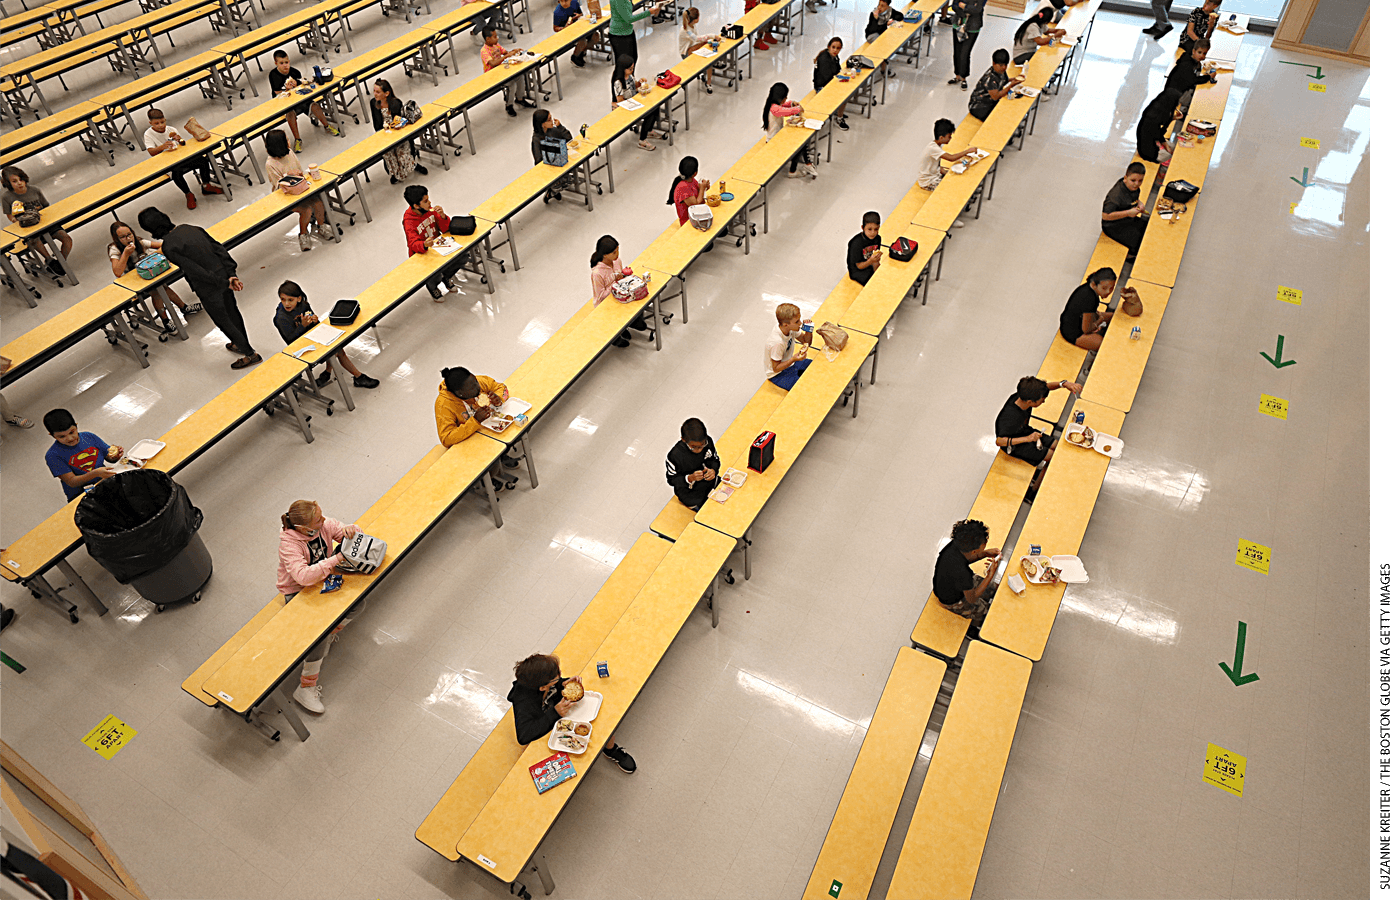 School children are spaced apart in one of the rooms used for lunch at Woodland Elementary School in Milford, Massachusetts.